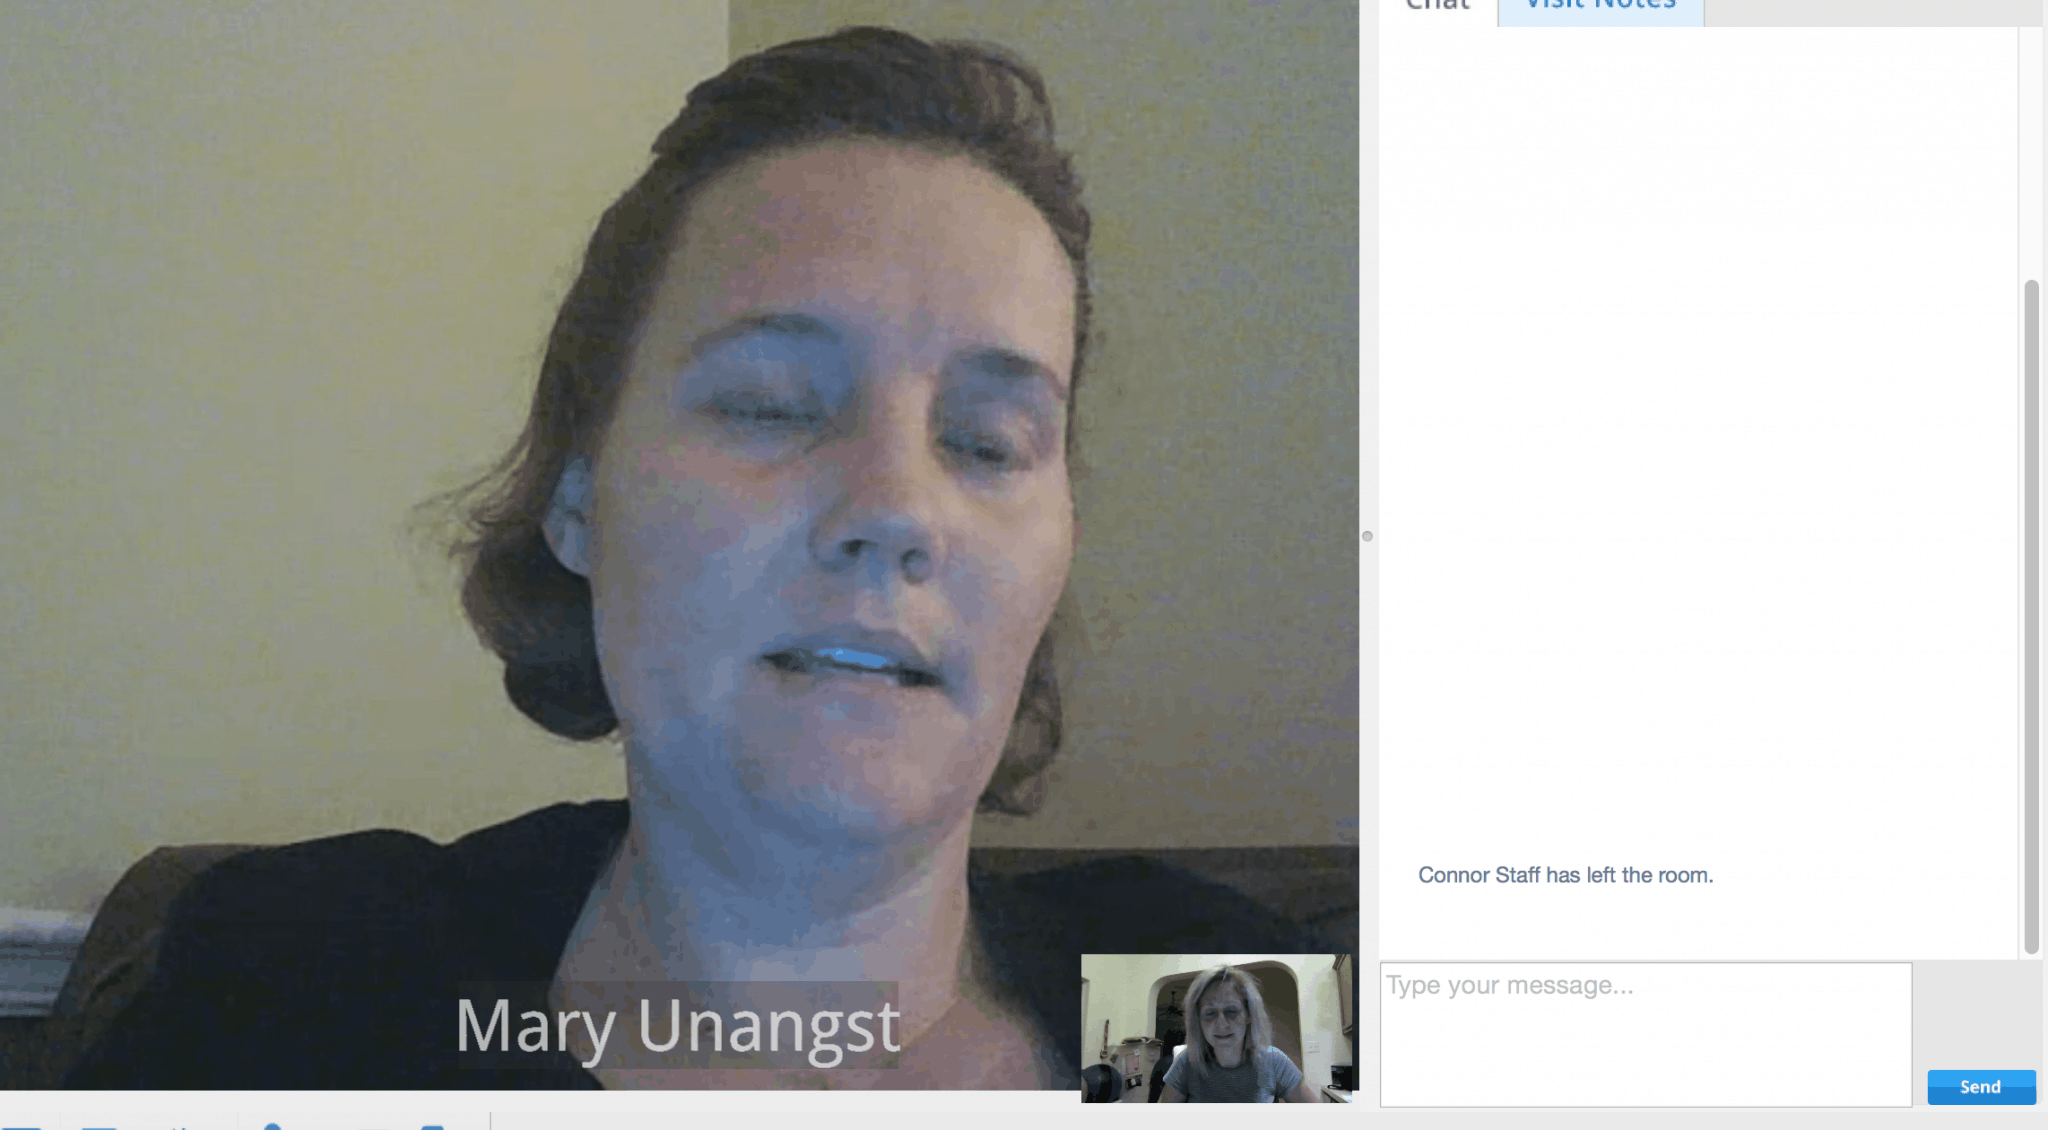 Mary Unangst online lactation consultant with Amwell - video chat